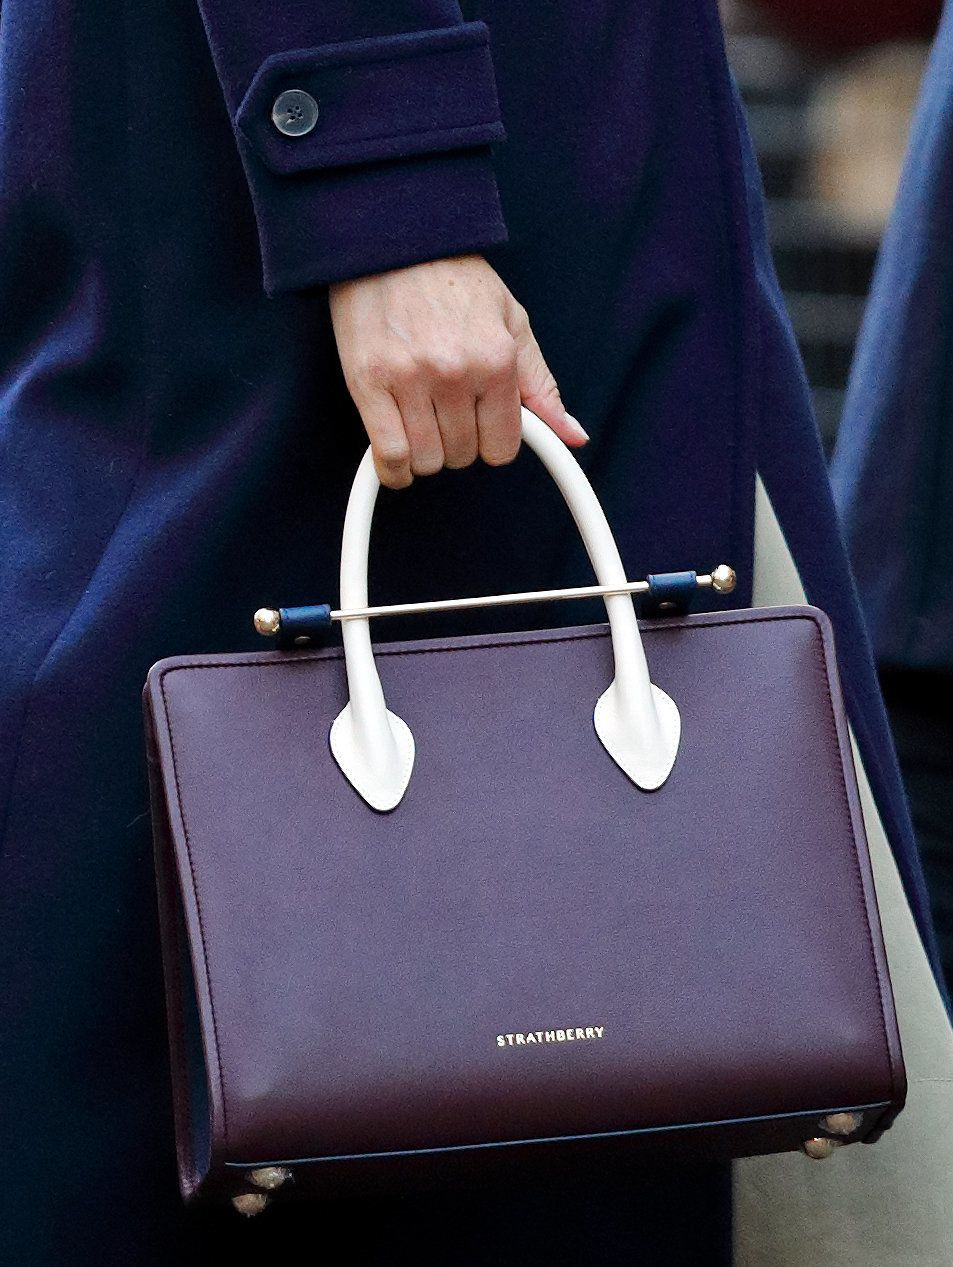 Meghan Markle's Strathberry Leather Bag Is Being Auctioned For